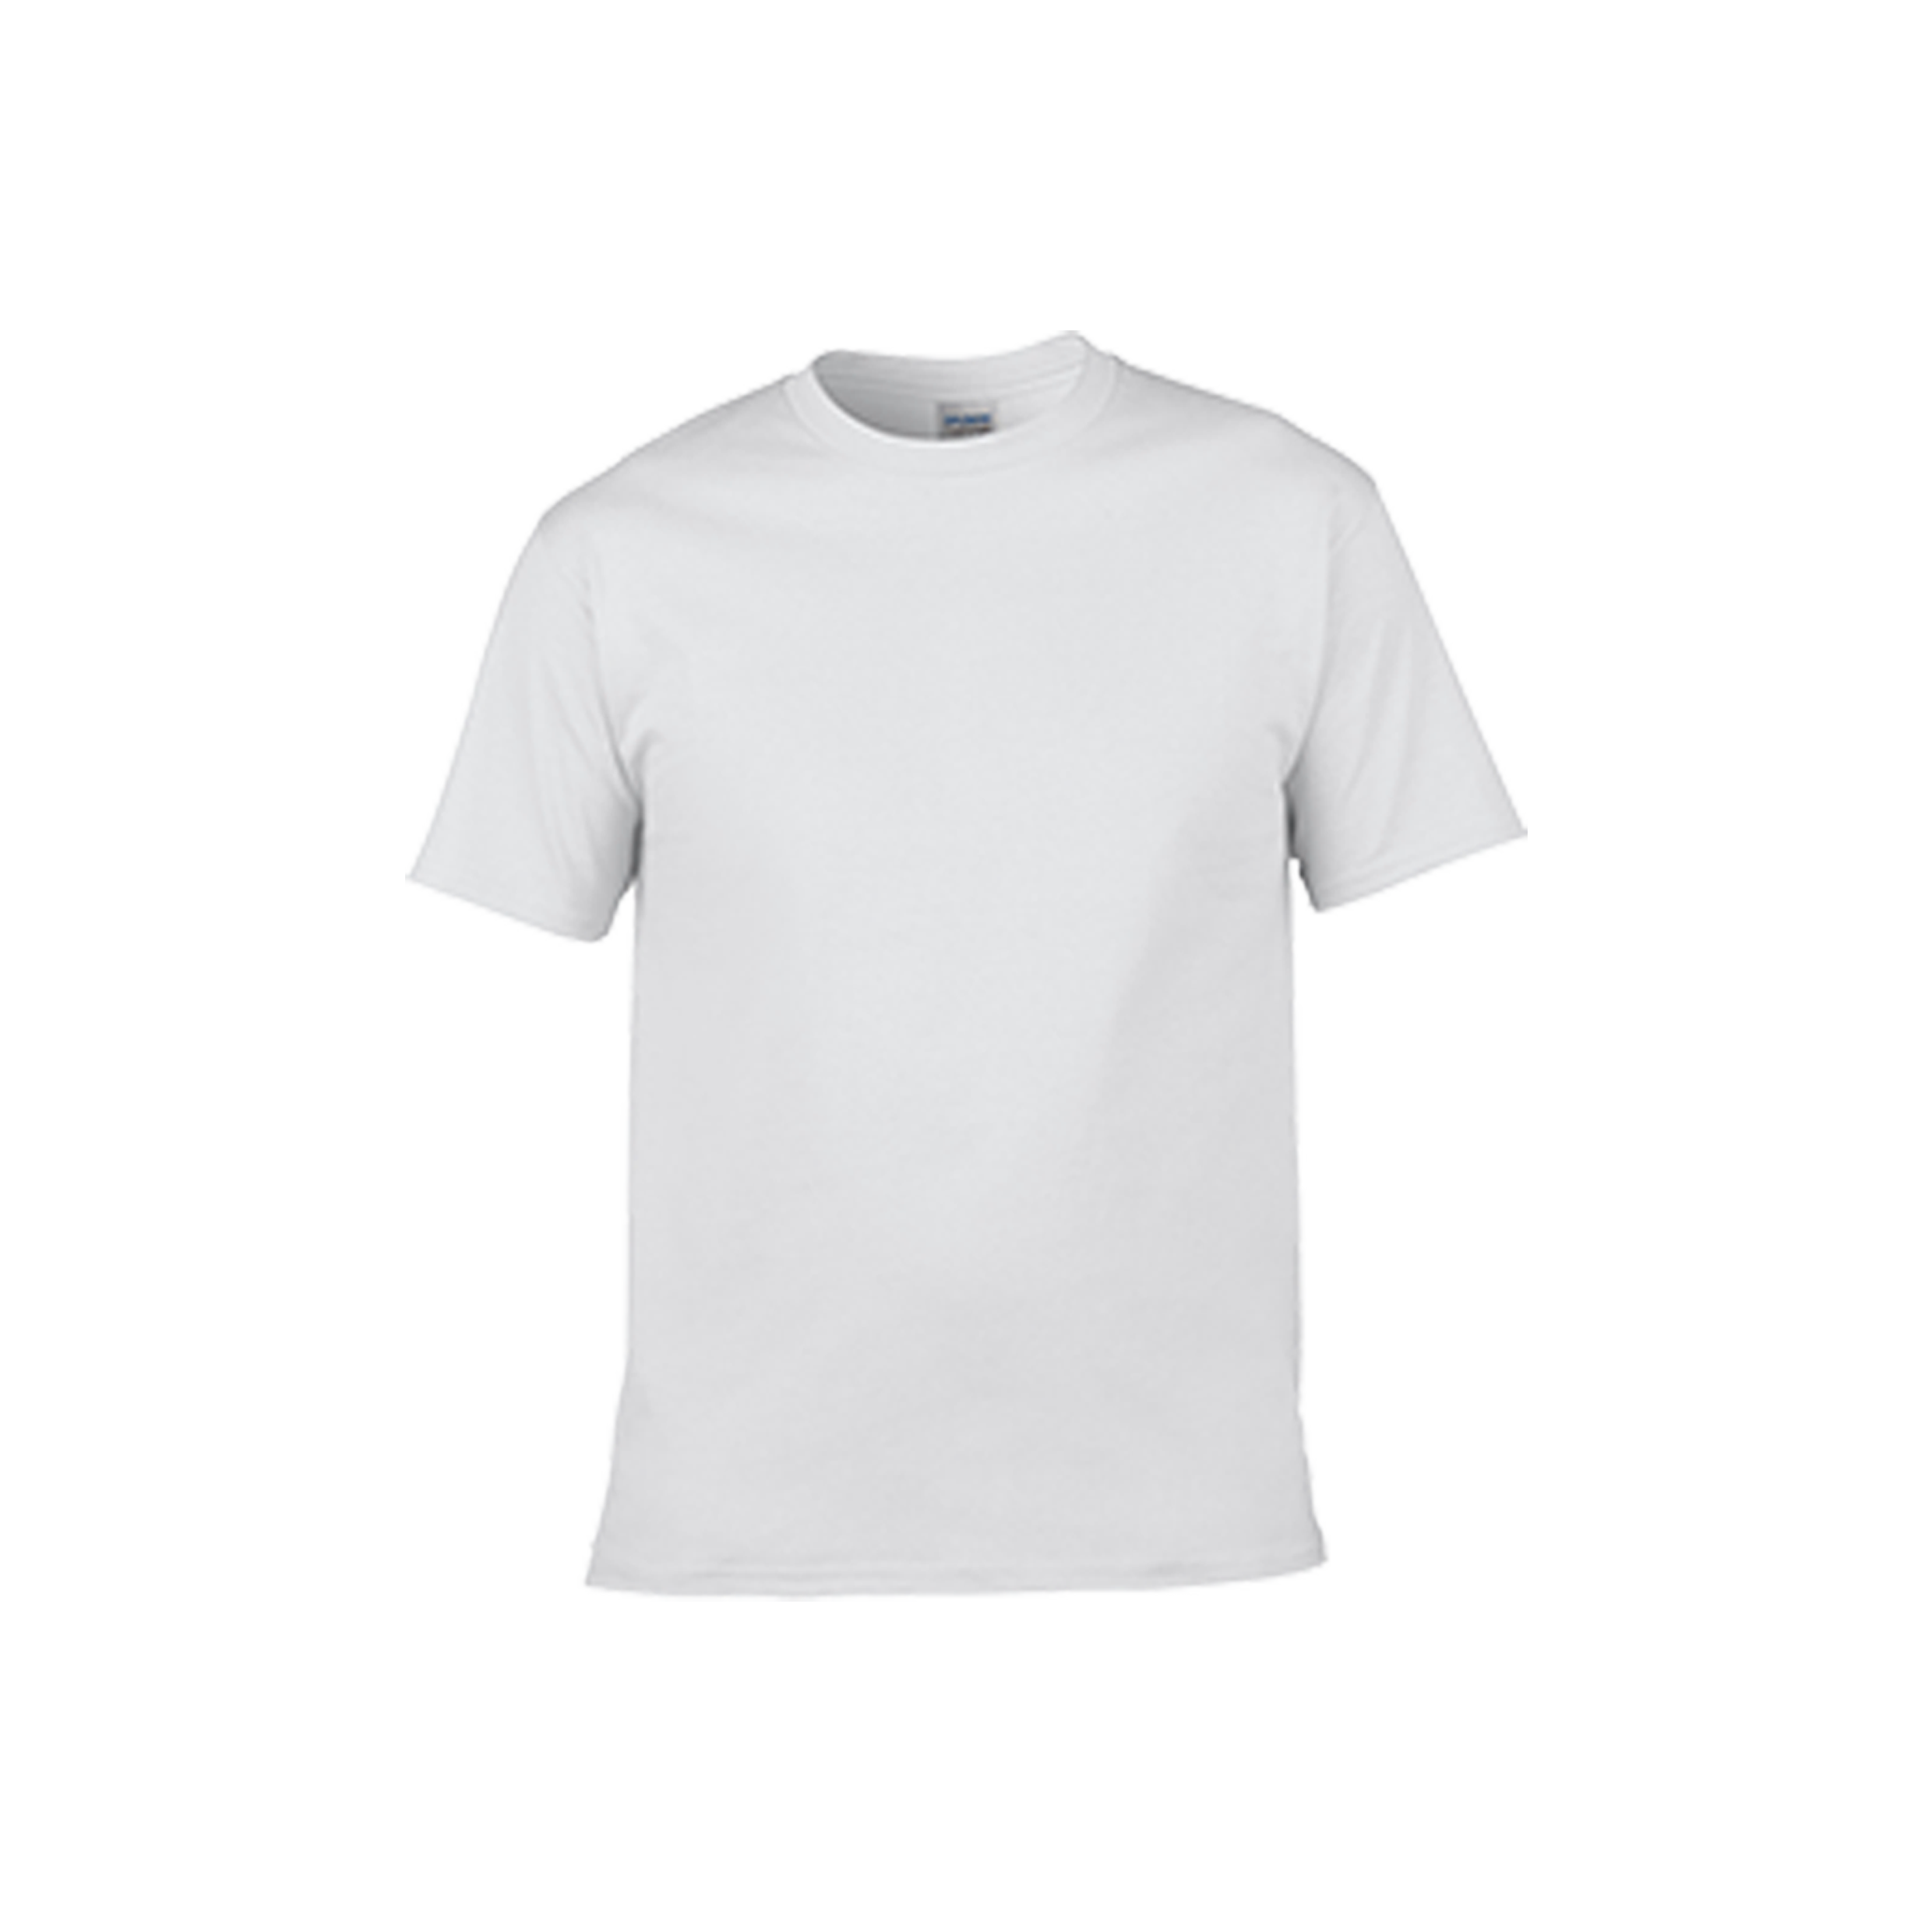 Gildan softstyle adult t shirt 63000 7 colors t shirt for Gildan t shirts online